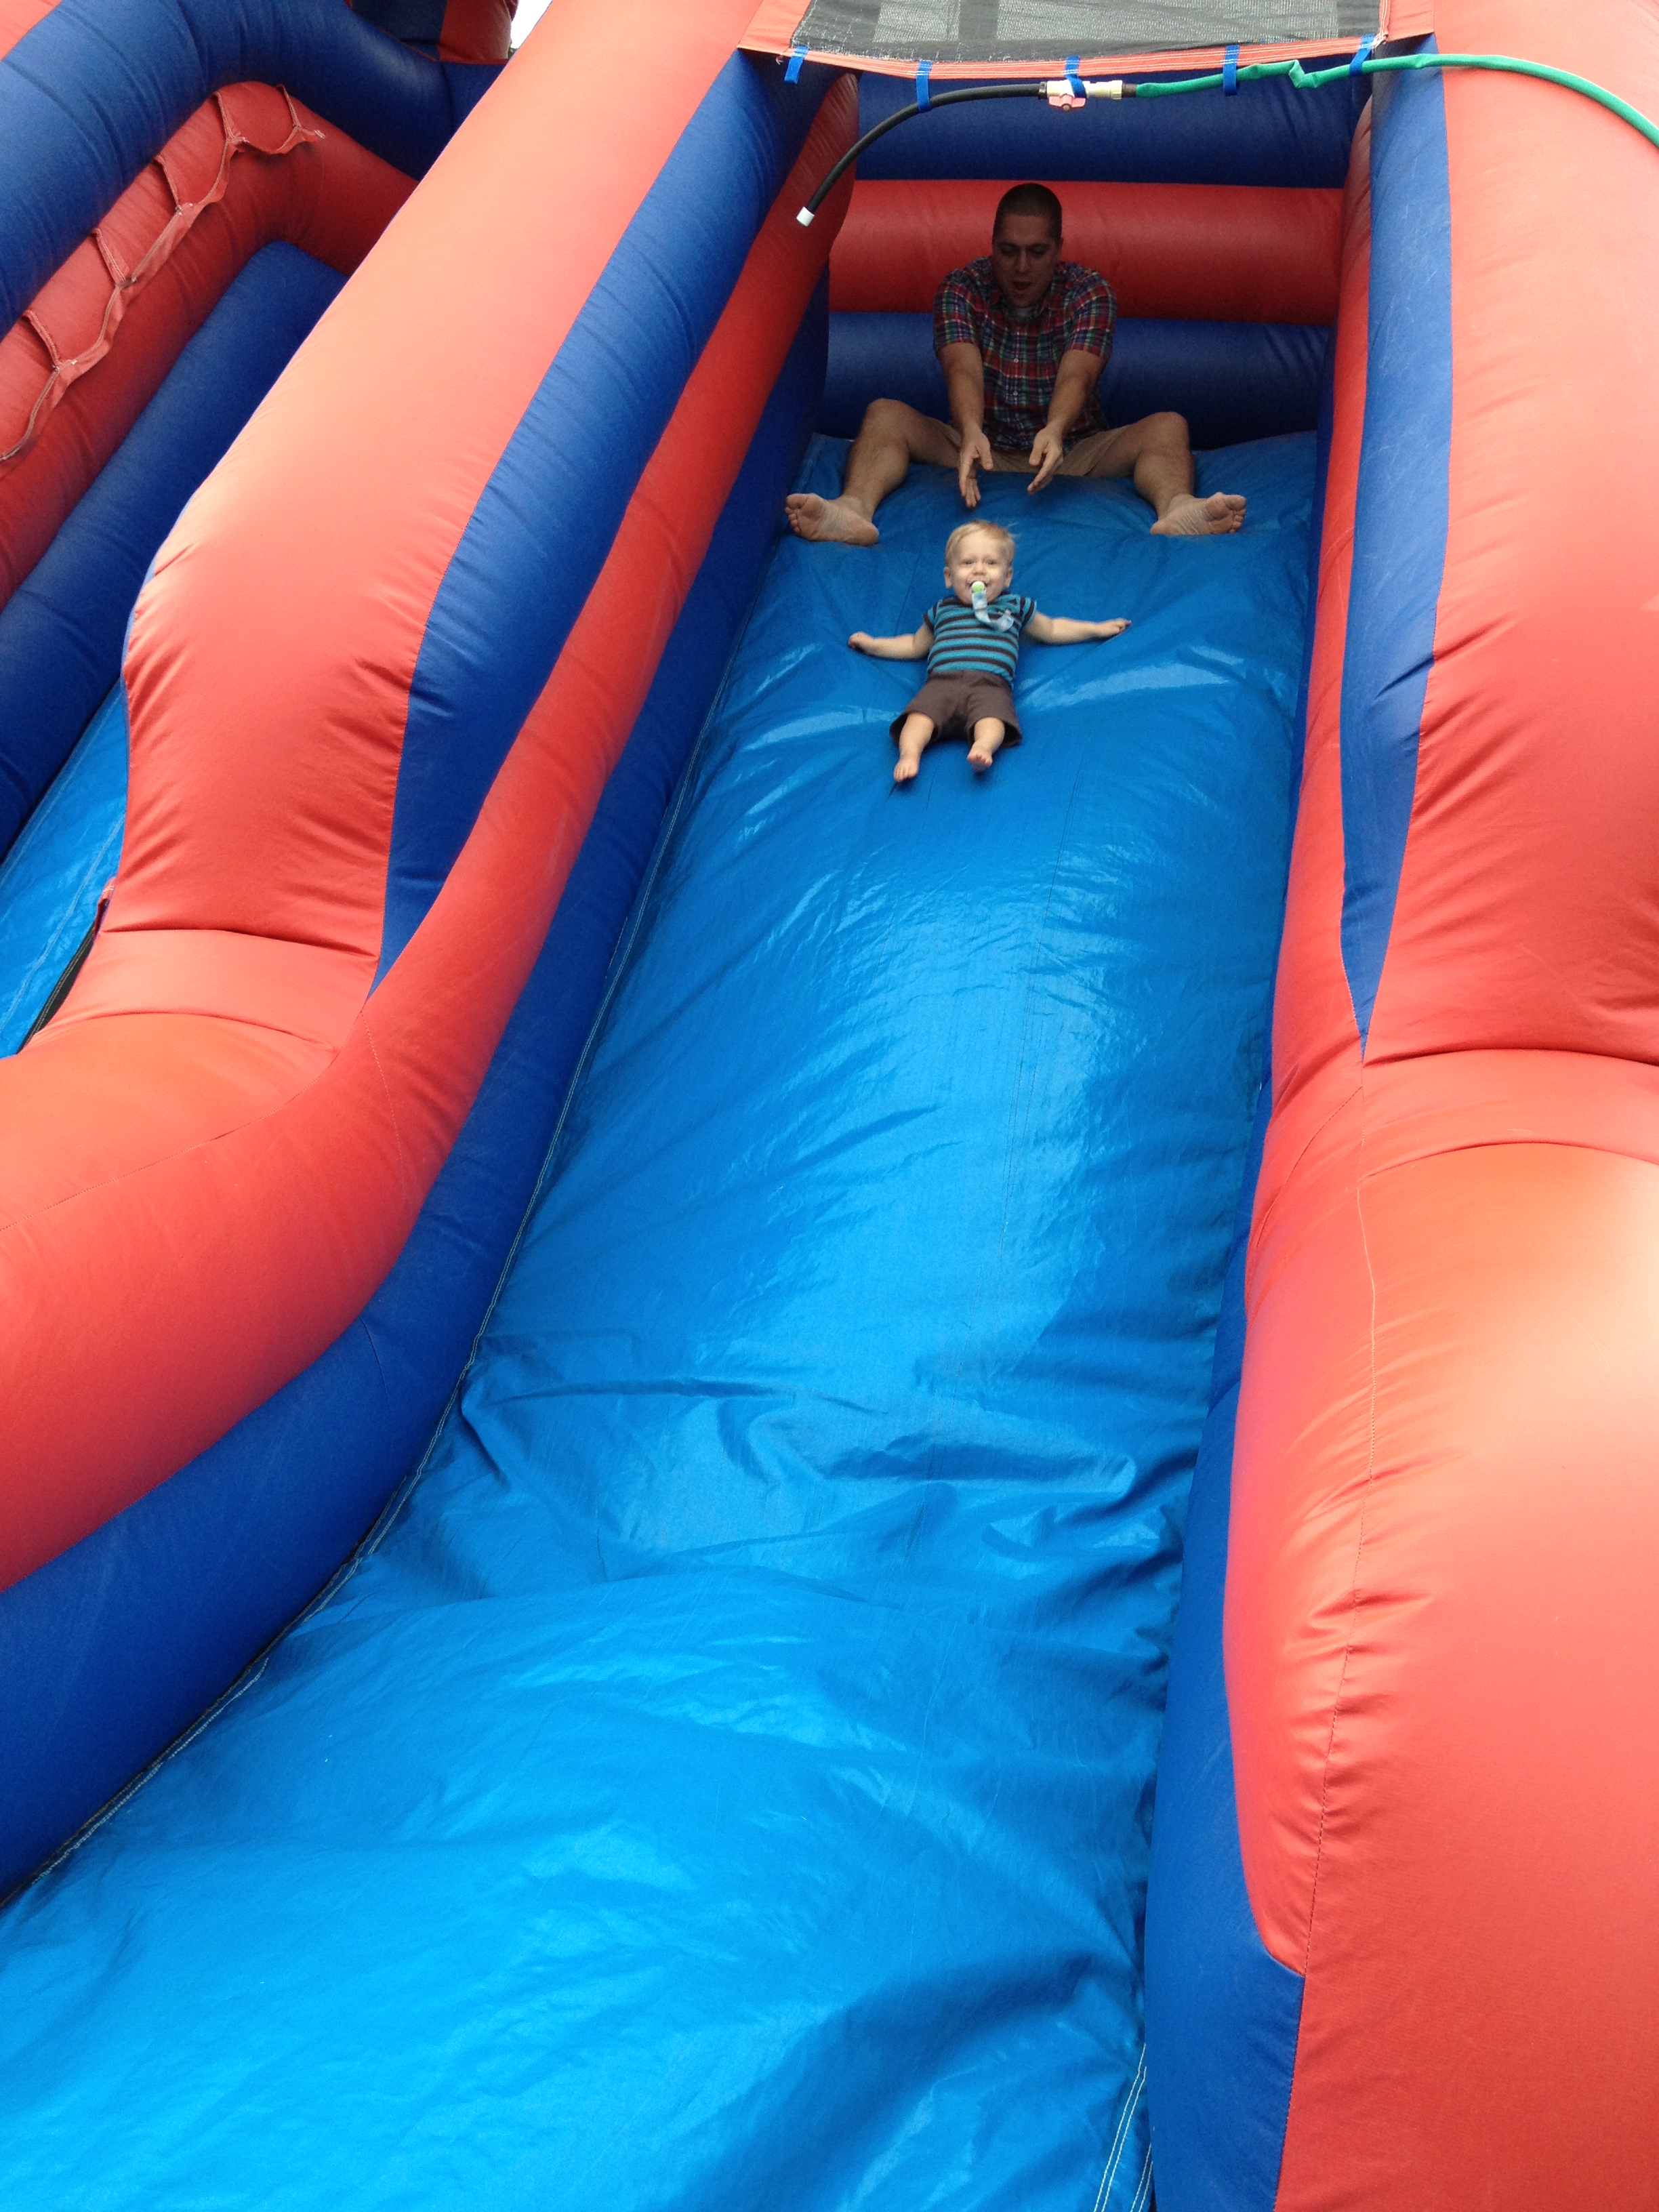 Fun for all ages!